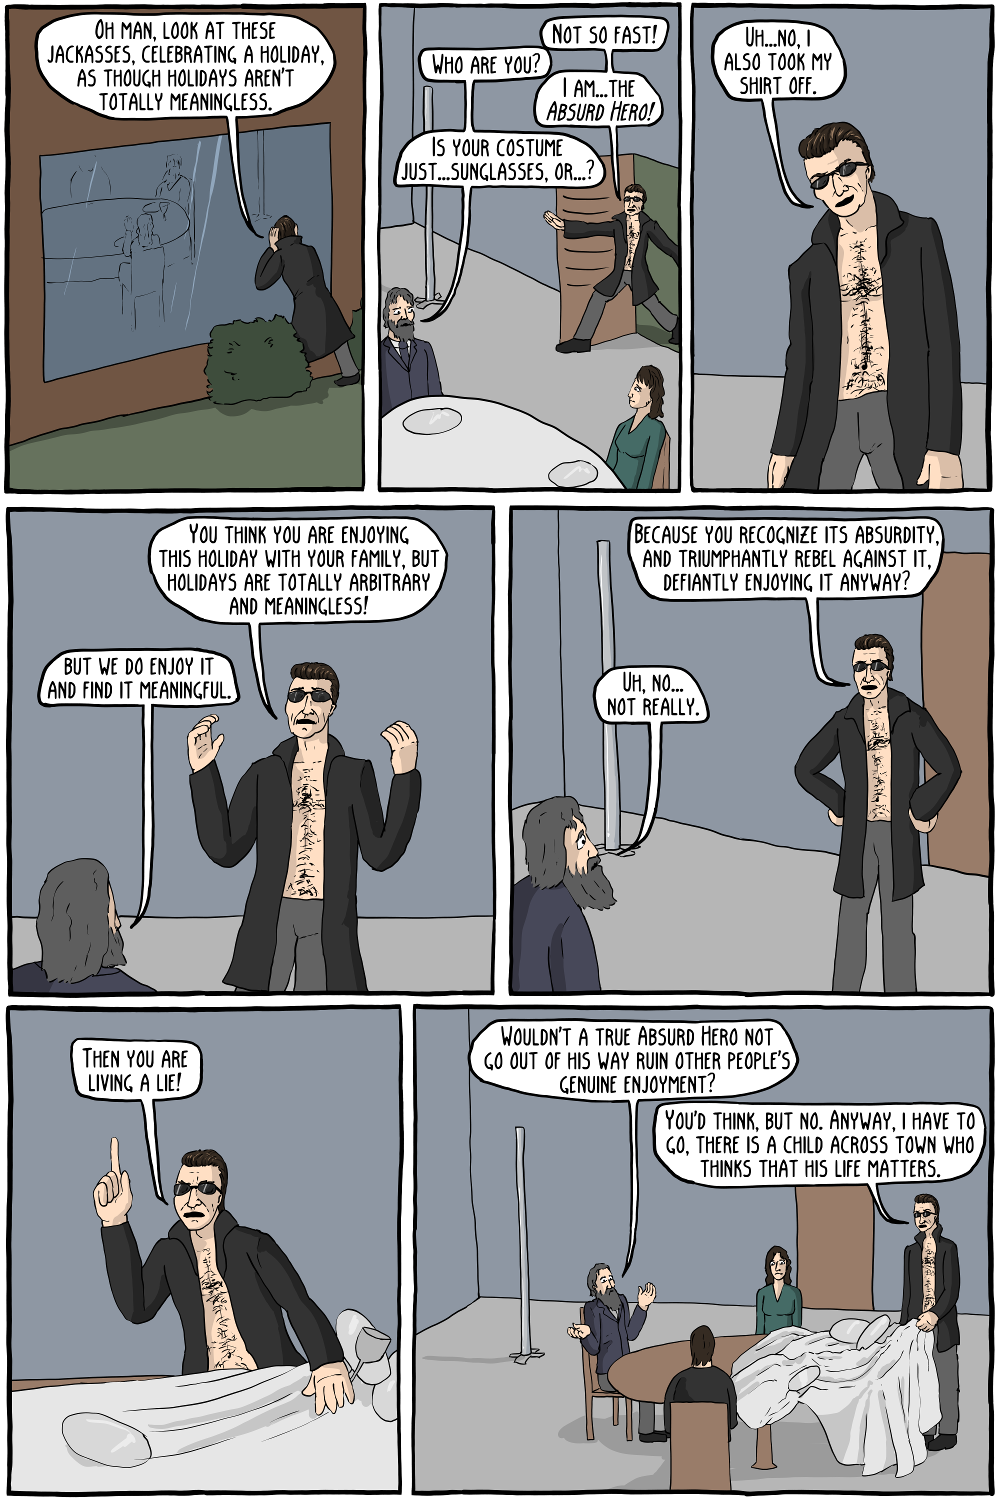 Is this comic unfair to Camus? Yeah, but that's just part of the absurdity of the world, you know?